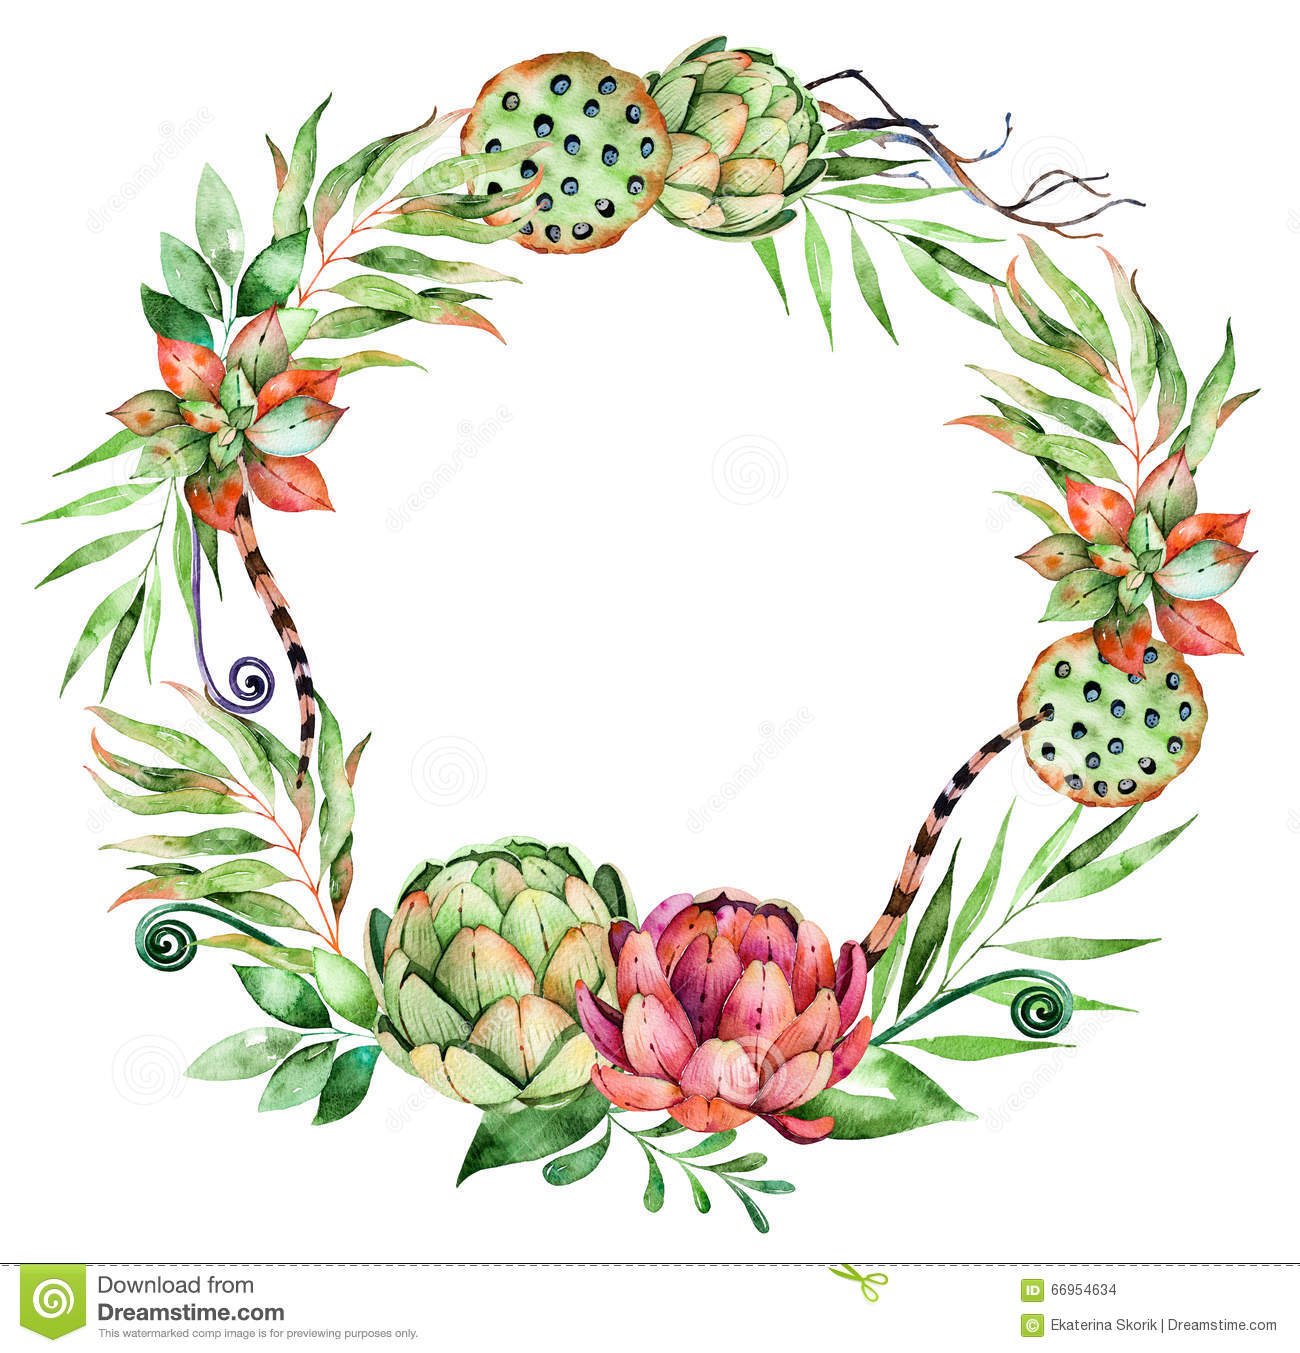 Colorful Floral Wreath With Artichoke,flowers,leaves,feathers.